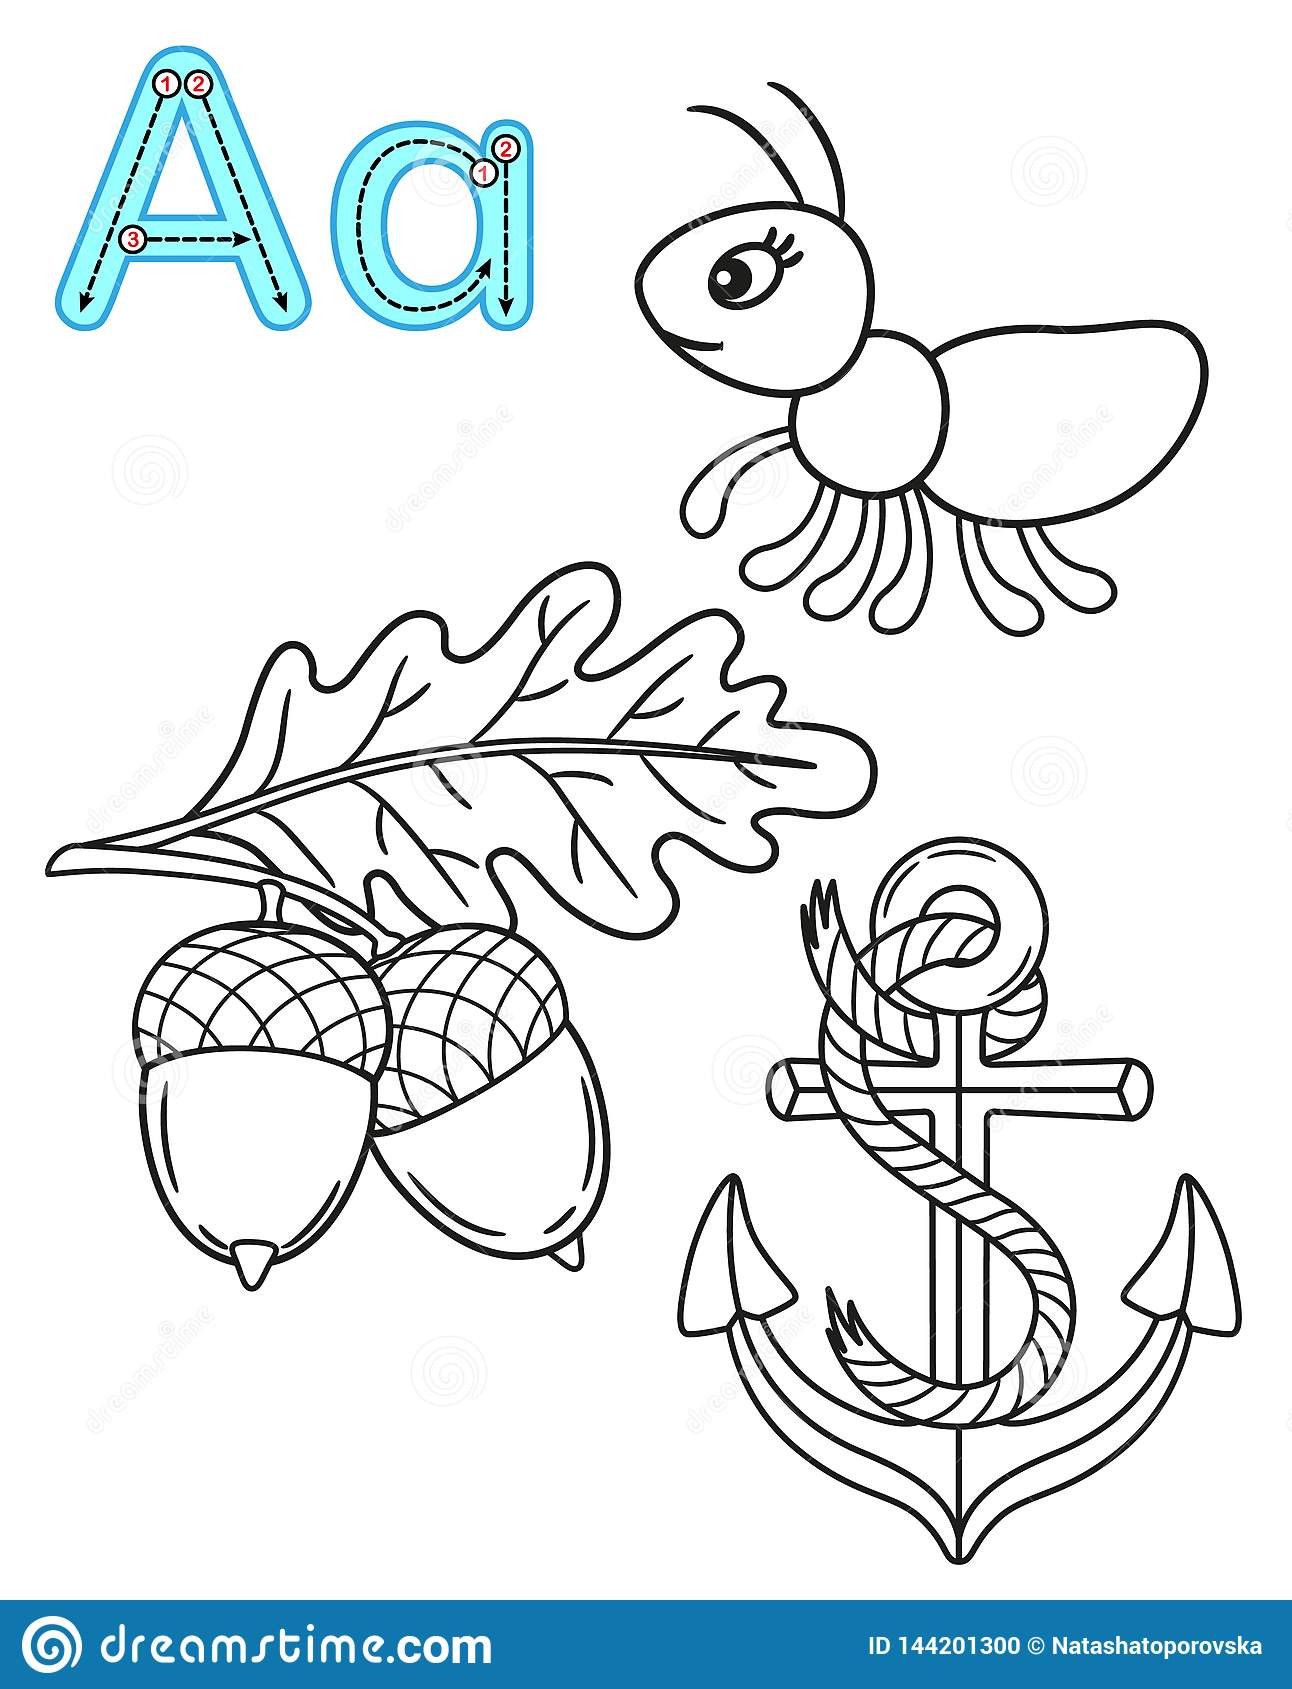 Printable Coloring Page For Kindergarten And Preschool Card For Study English Vector Coloring Book Alphabet Letter A Anchor Stock Vector Illustration Of Line Isolated 144201300